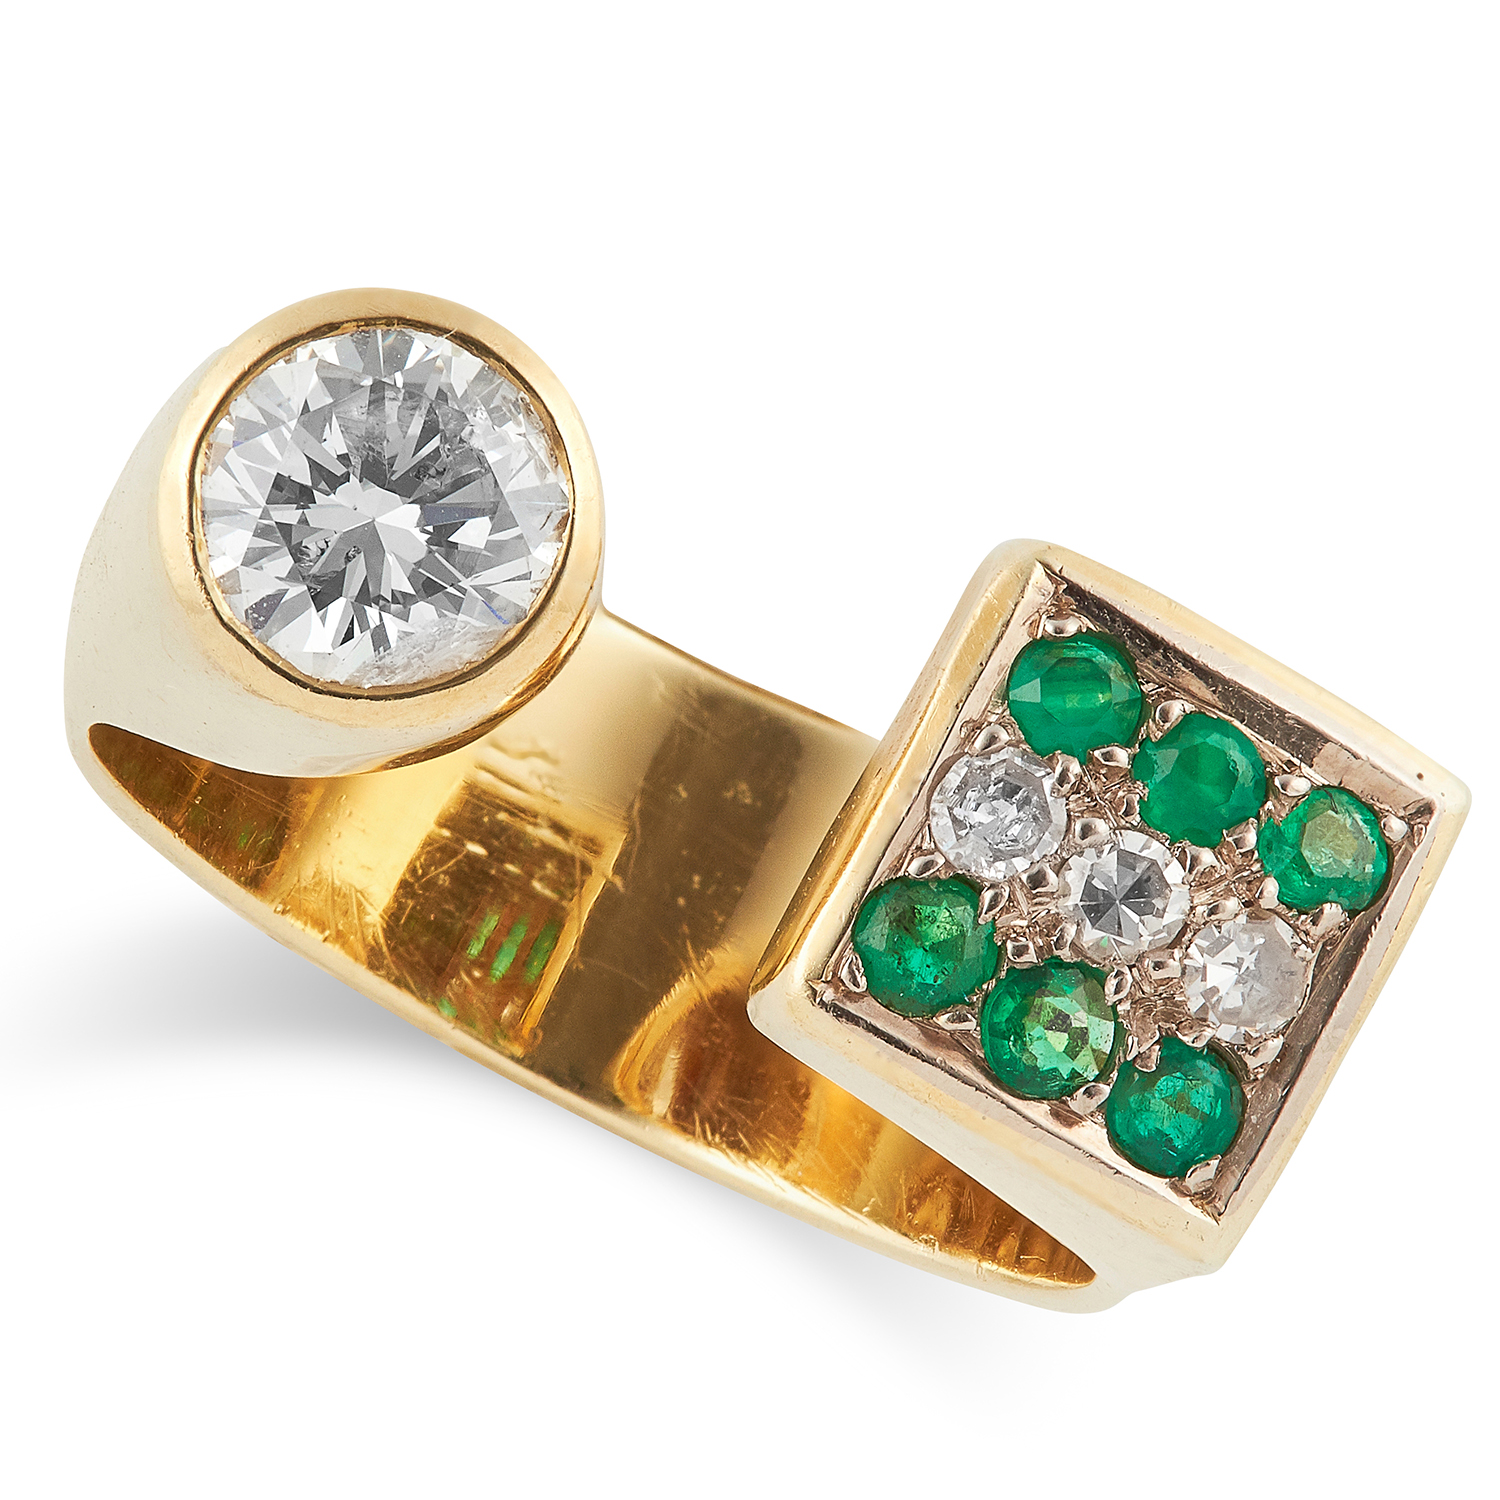 ABSTRACT DIAMOND AND EMERALD RING set with round cut diamonds and round cut emeralds, N / 7, size